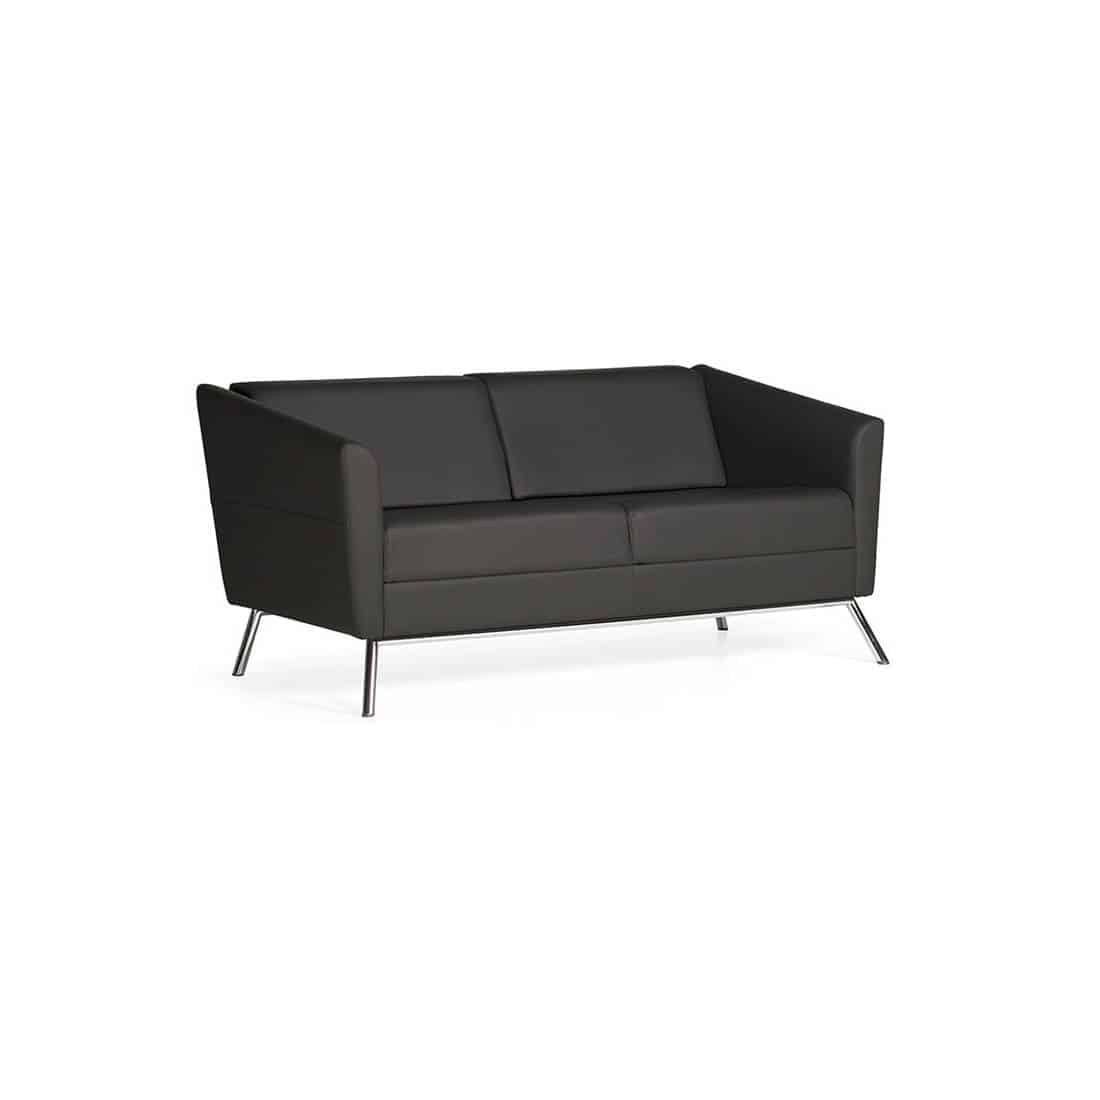 Global Wind 2 Seater Two Seat Sofa Reception Seating 29 x 54.5 x 28.5 in Leather/Mock leather